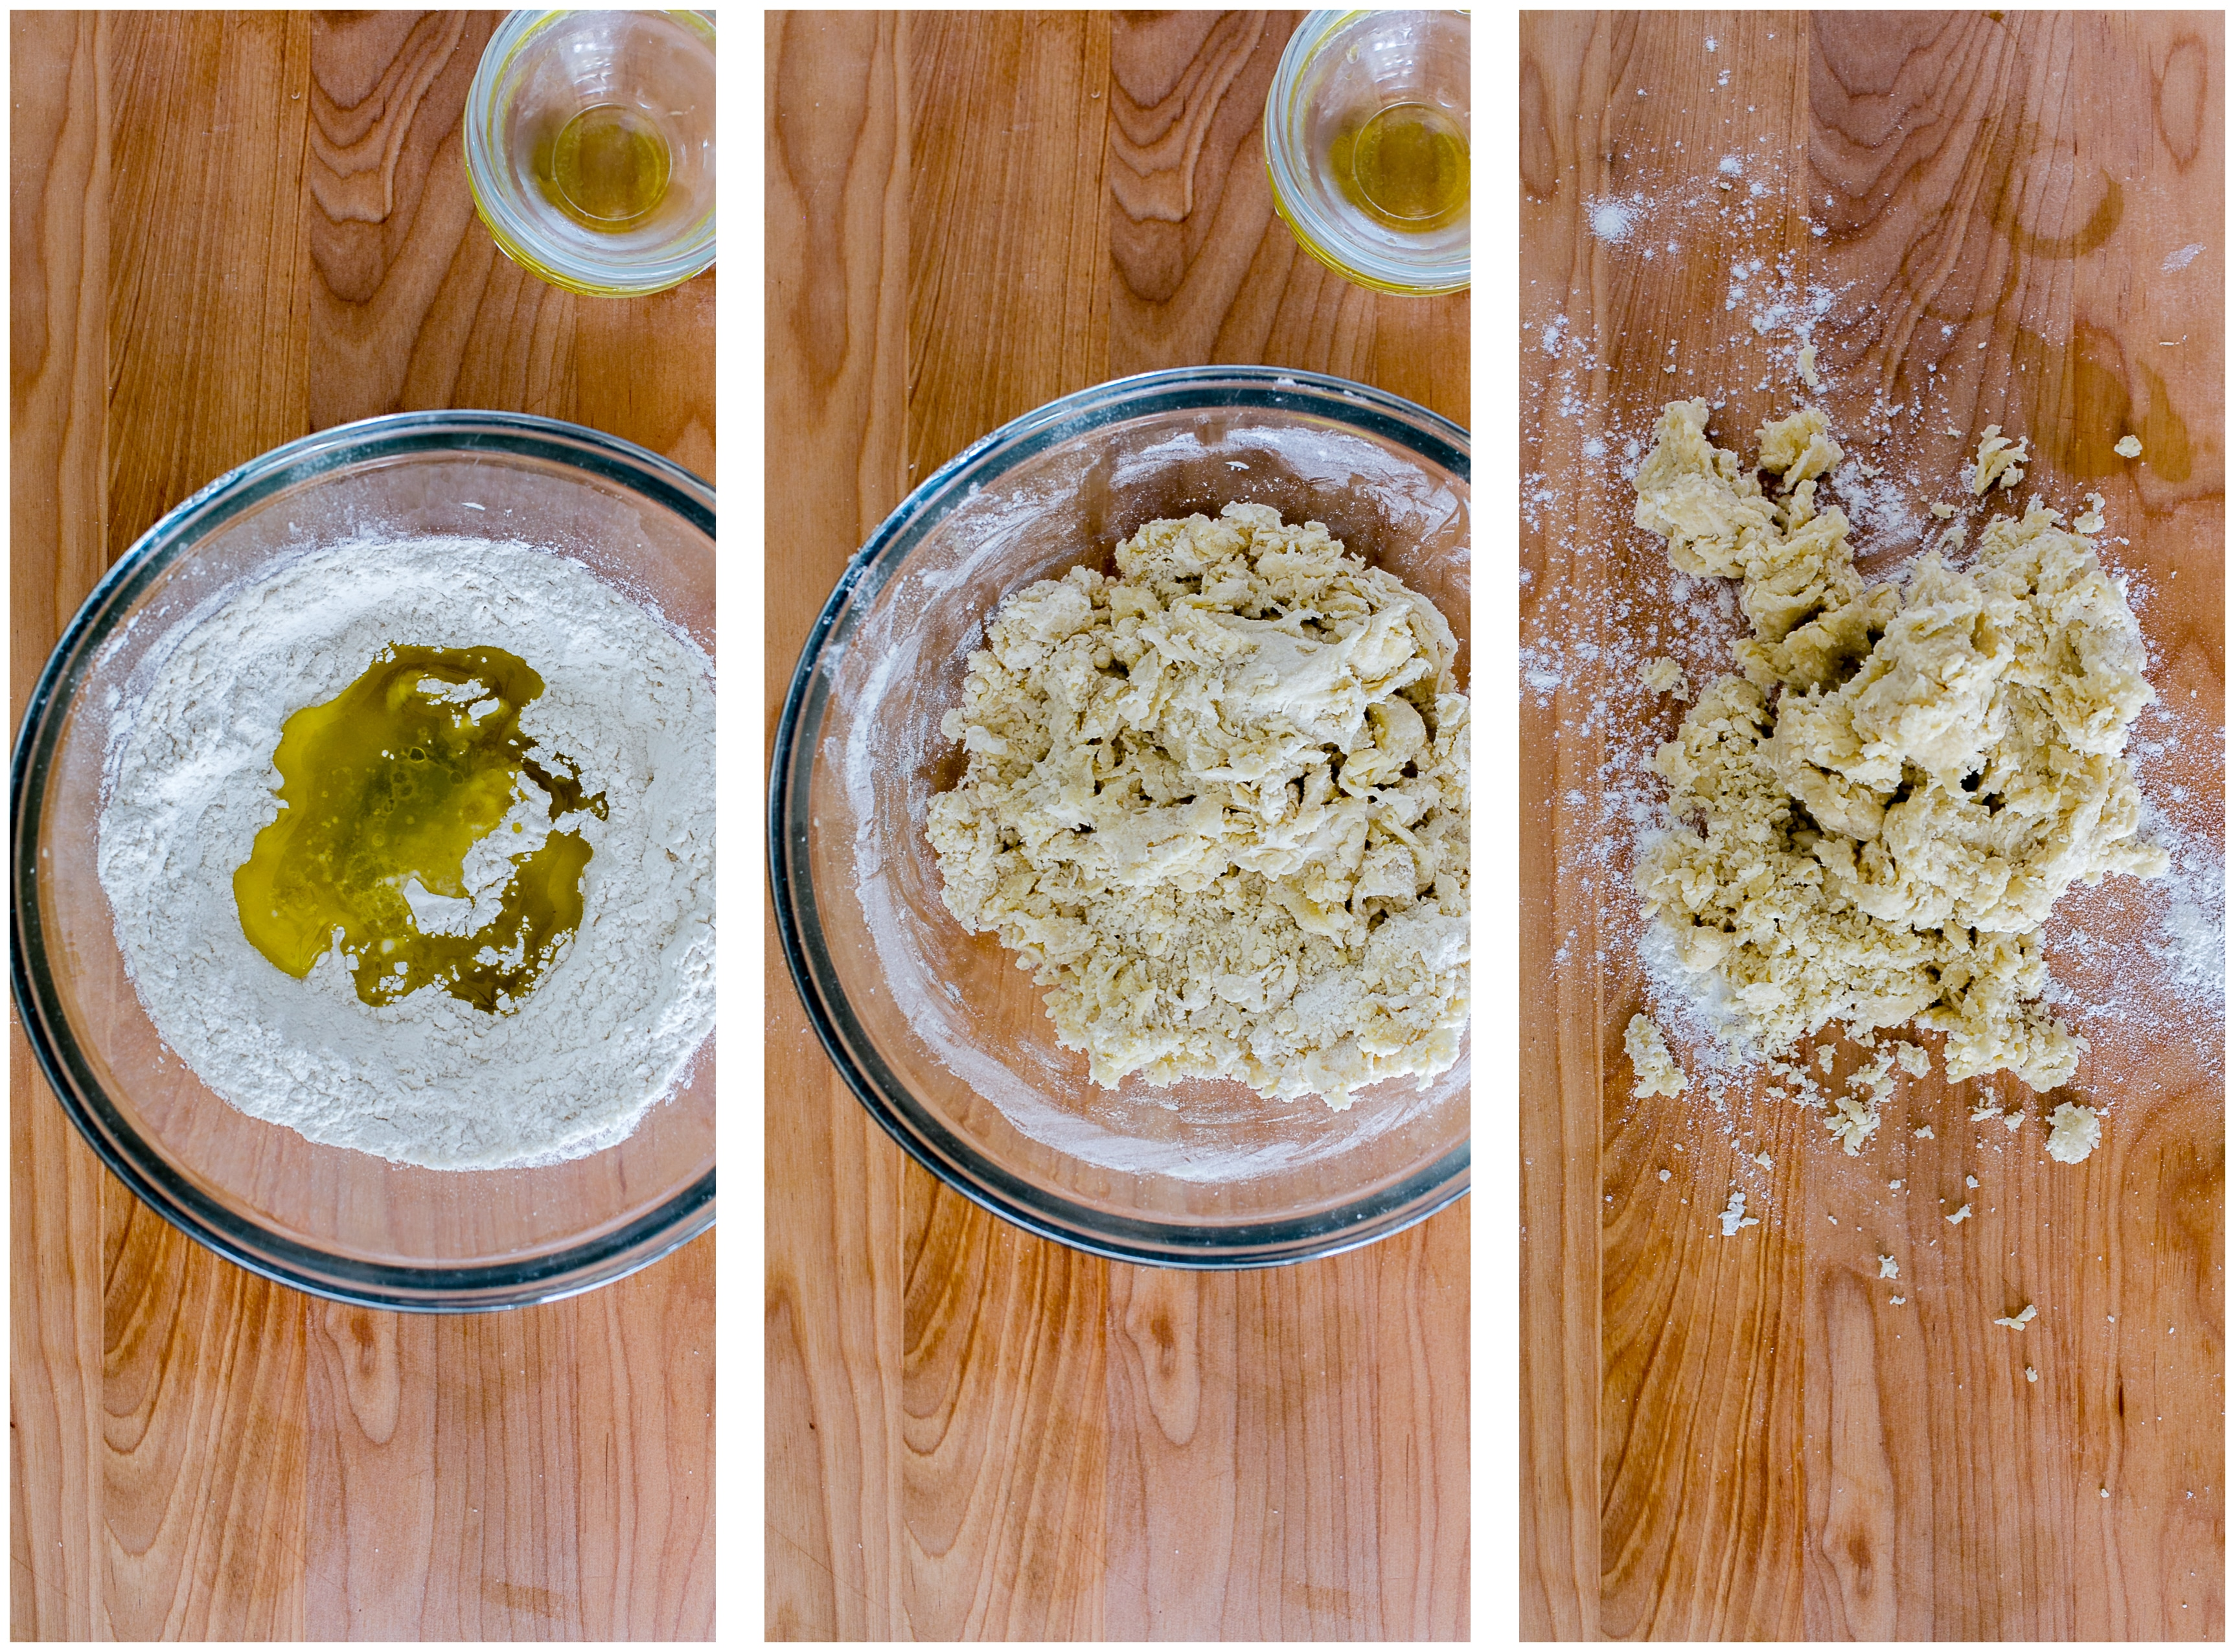 Mixing dry ingredients for the peroigie dough.